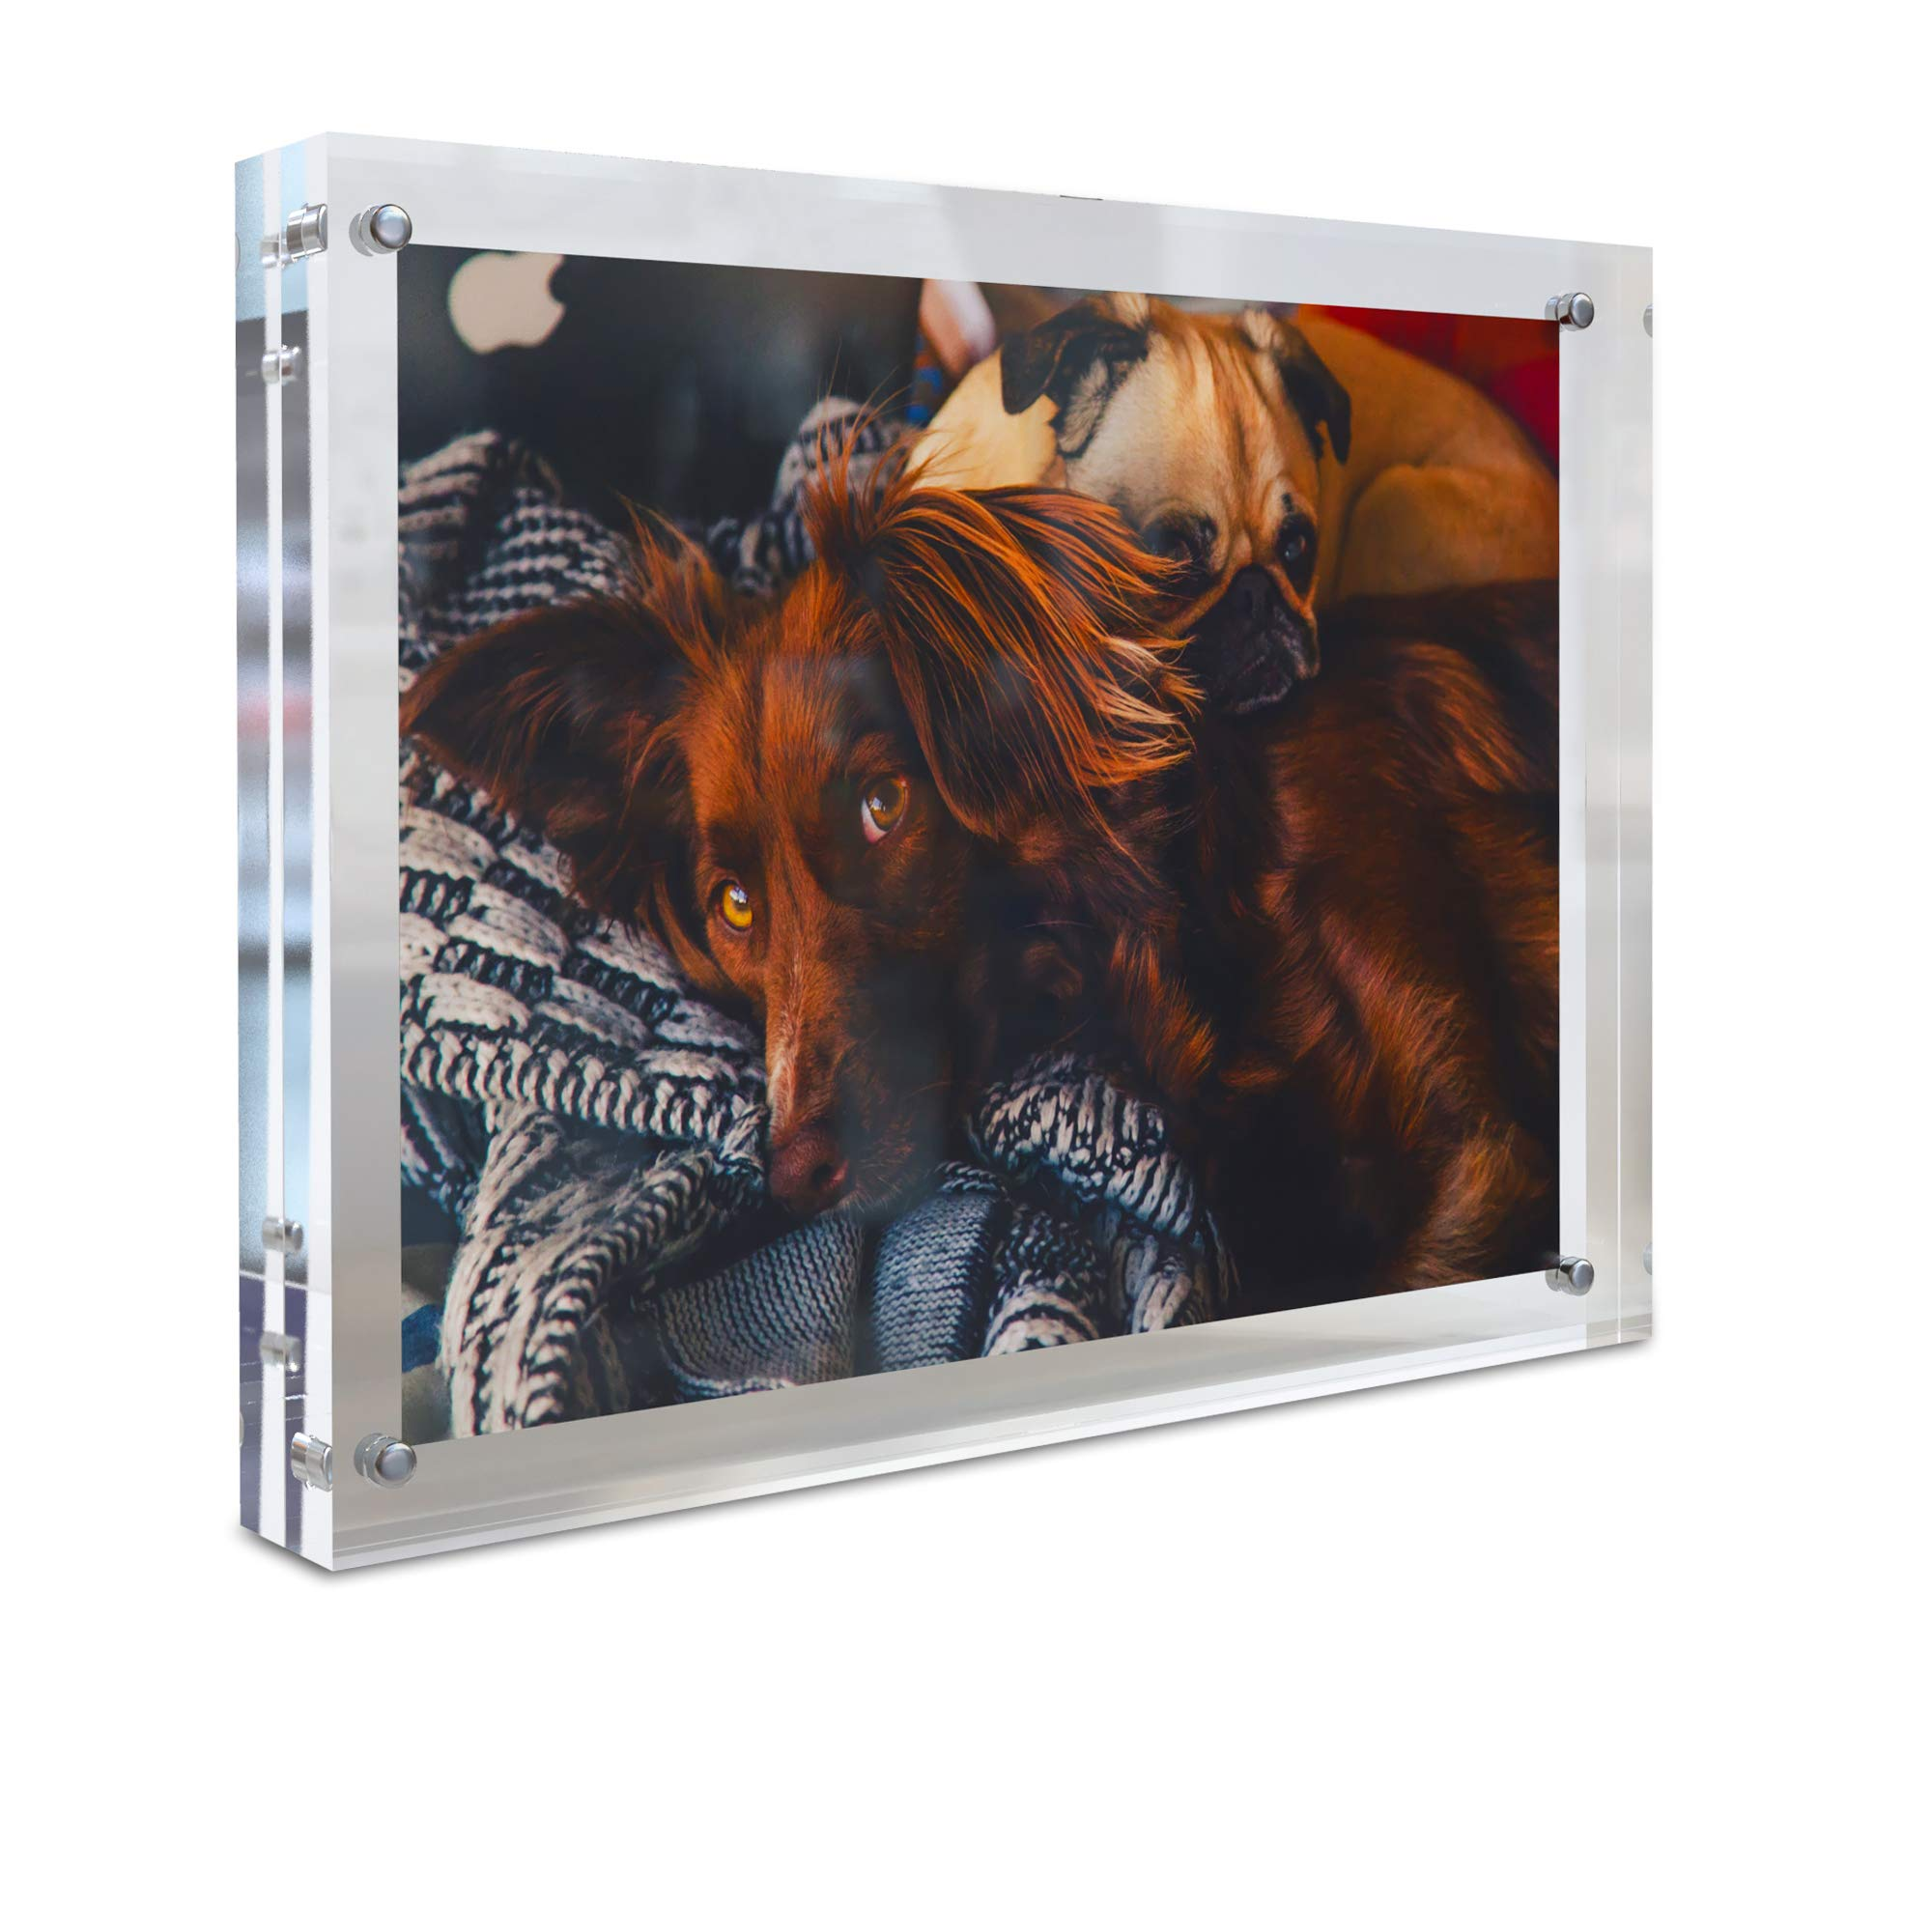 MÍRA-K Acrylic Picture Frame 6 x 8 with Magnetic Closure | Crystal Memories | Double Sided Frameless Lucite Photo Frame for Tabletop | Decorative Keepsake Display for Tickets, Postcards and Awards